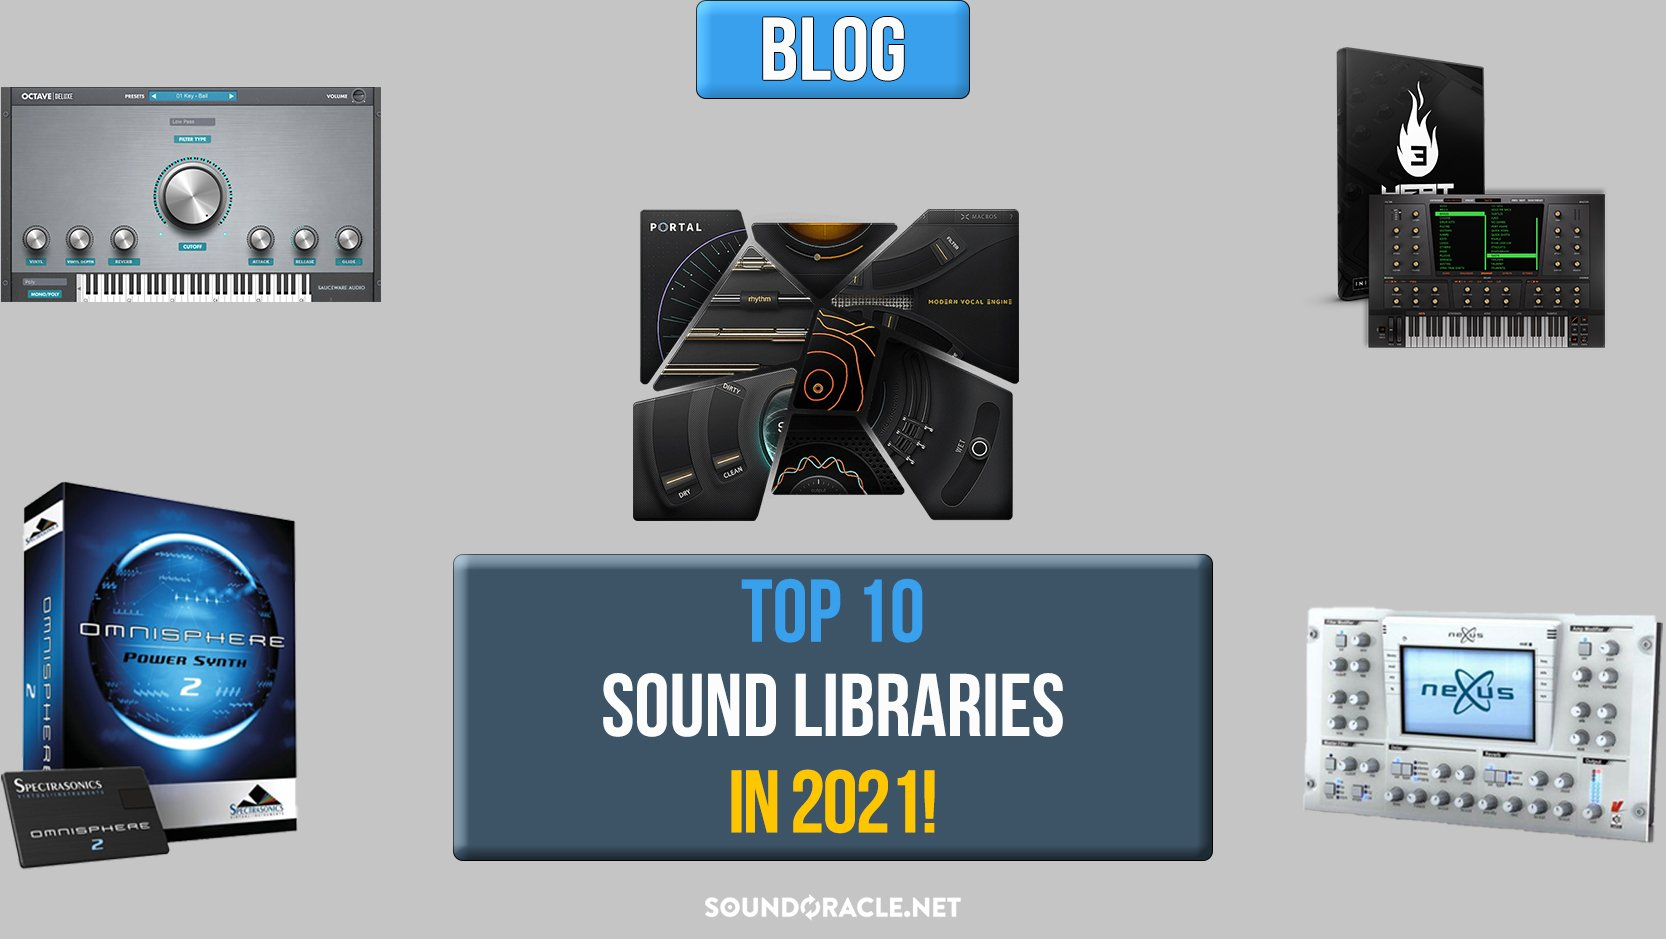 Top 10 Sound Libraries For Producers In 2021!